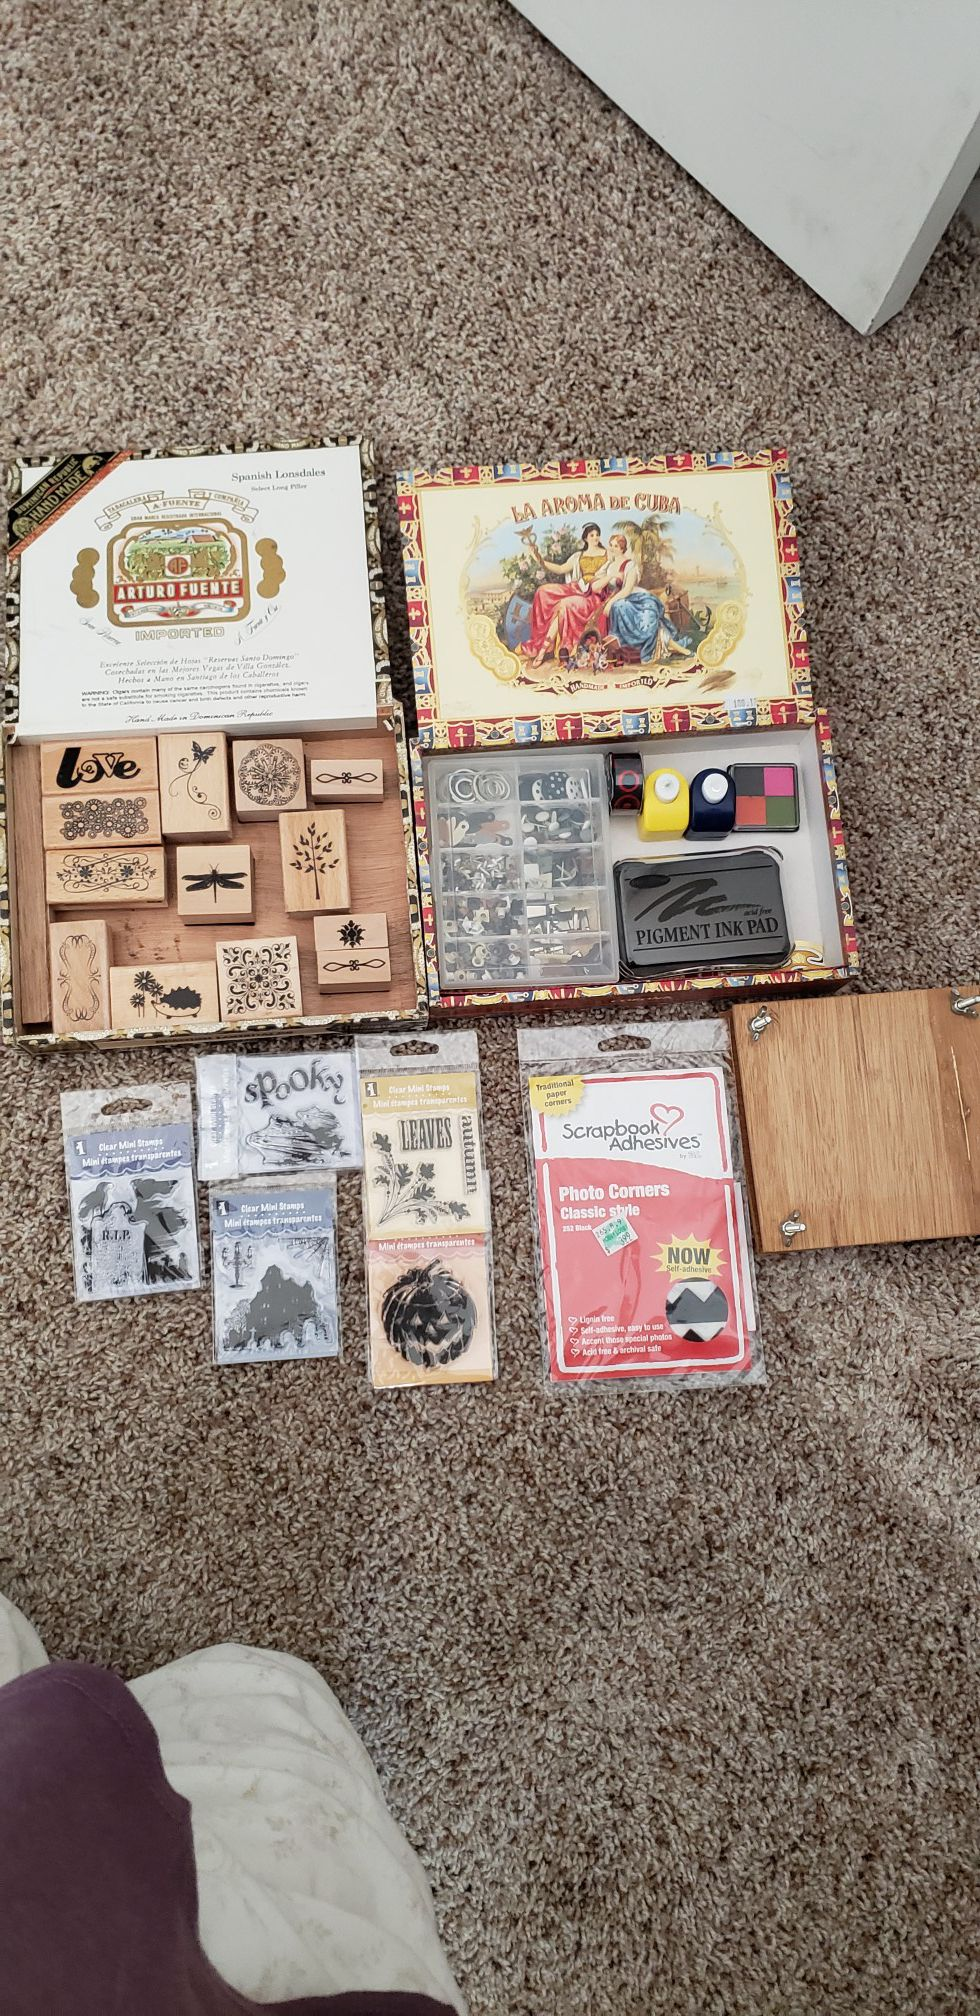 Stamps and Scrapbooking stuff